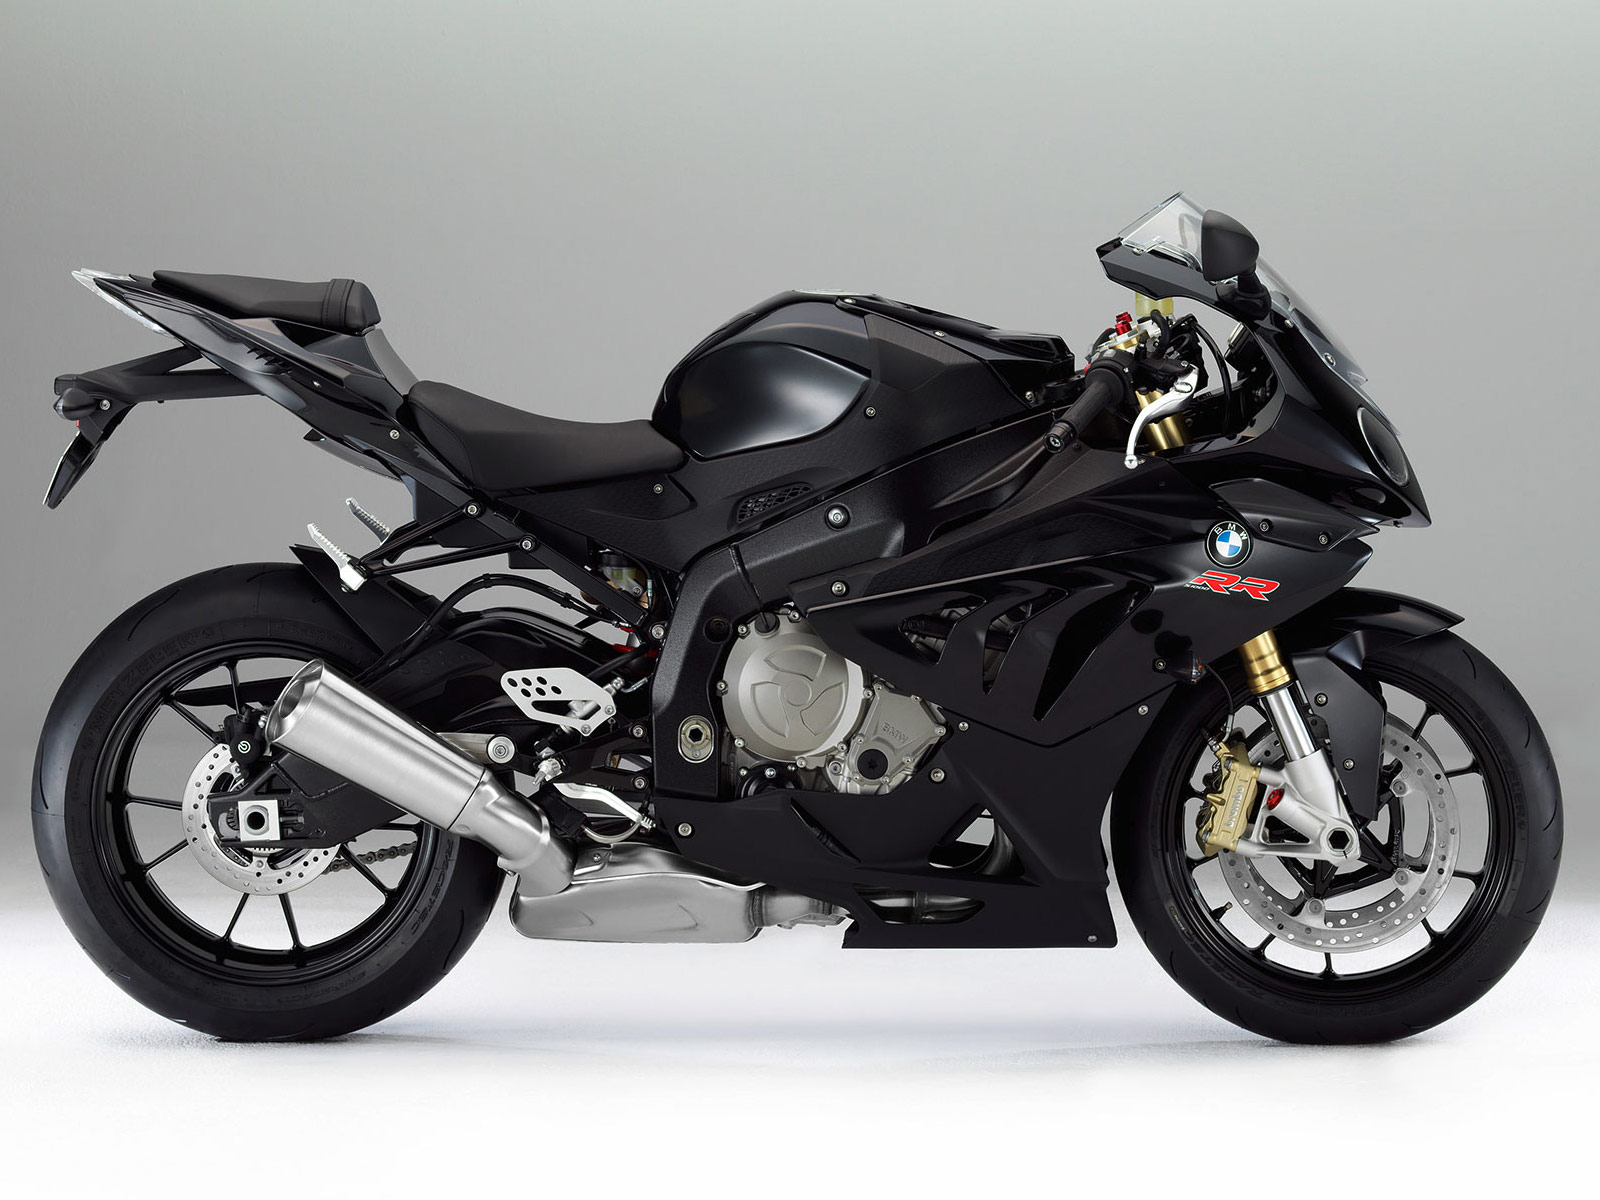 bmw s1000rr 2013 motorcycle insurance information  review  pictures